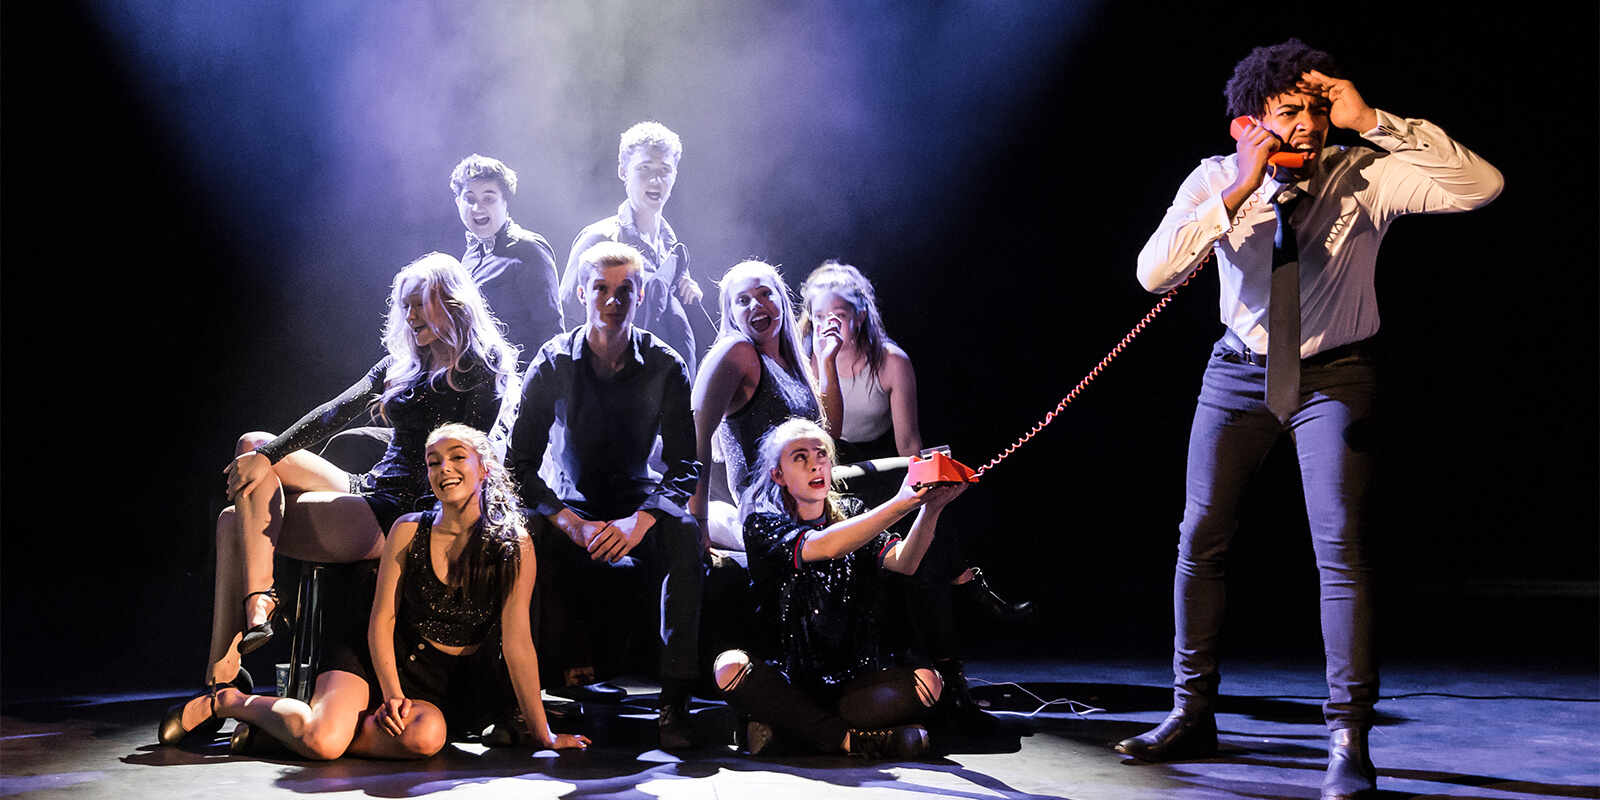 Arts1 Evening & Weekend Class: Sixth Form Musical Theatre Course